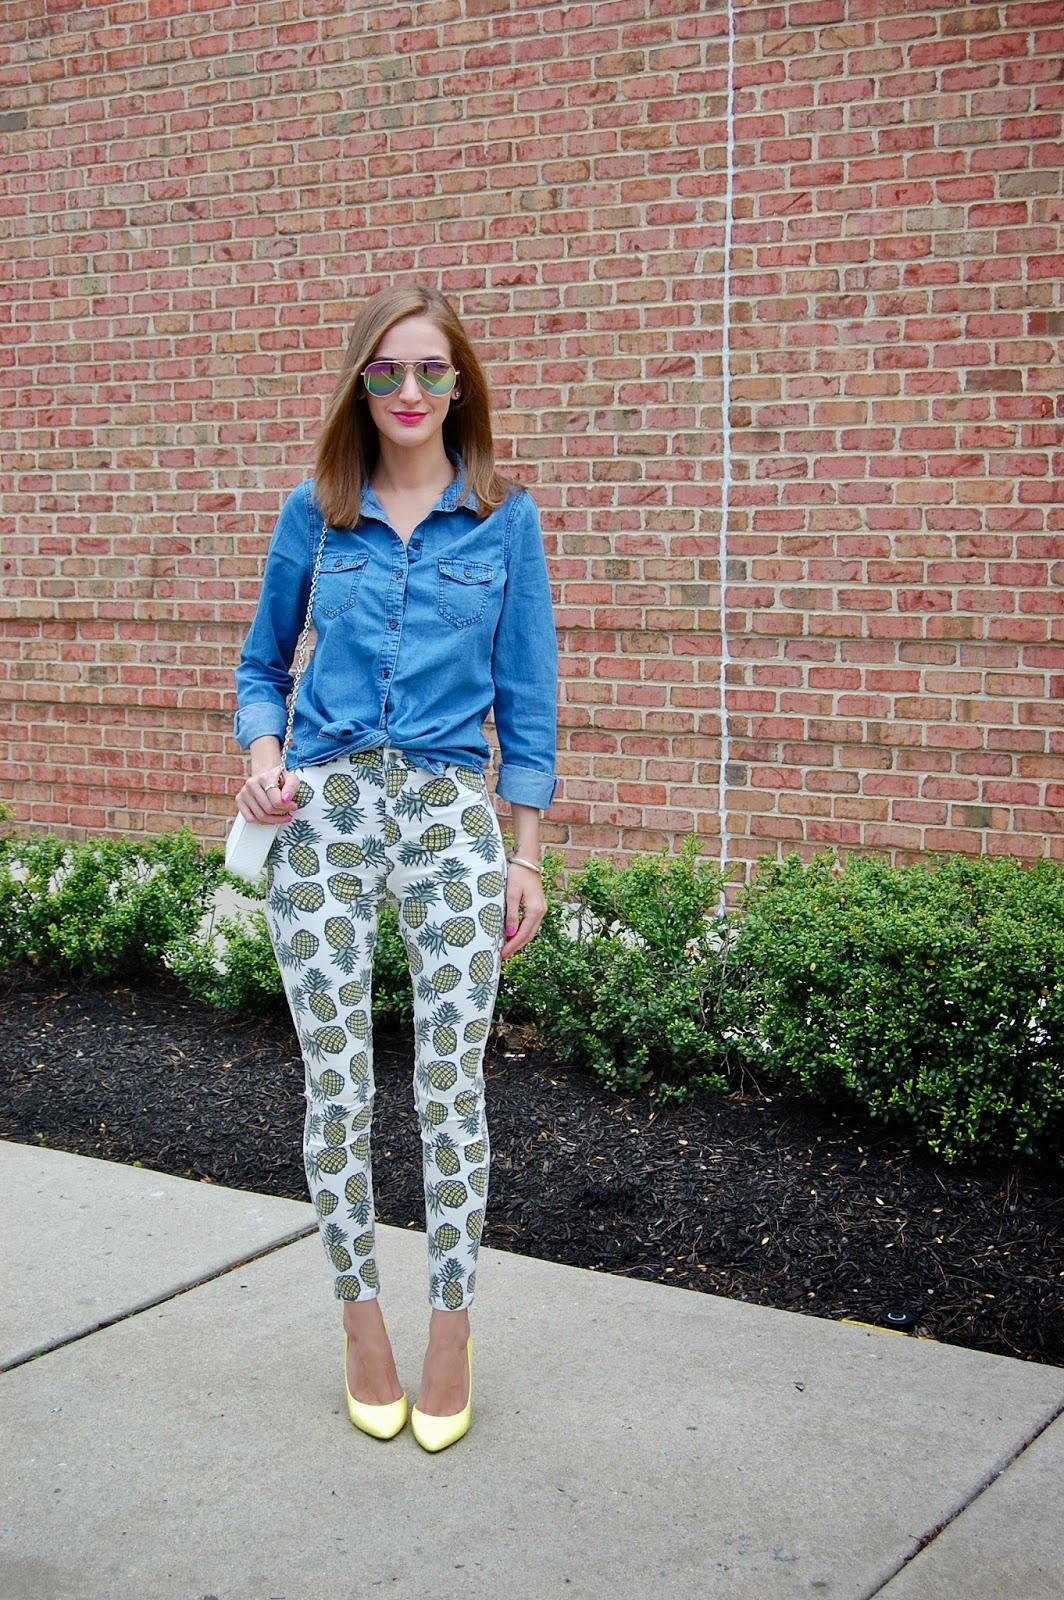 Wearing tied chambray shirt, Topshop pineapple pants, Bcbg Paris yellow jaze heels, lucite clutch, pineapple trend, pineapple pants